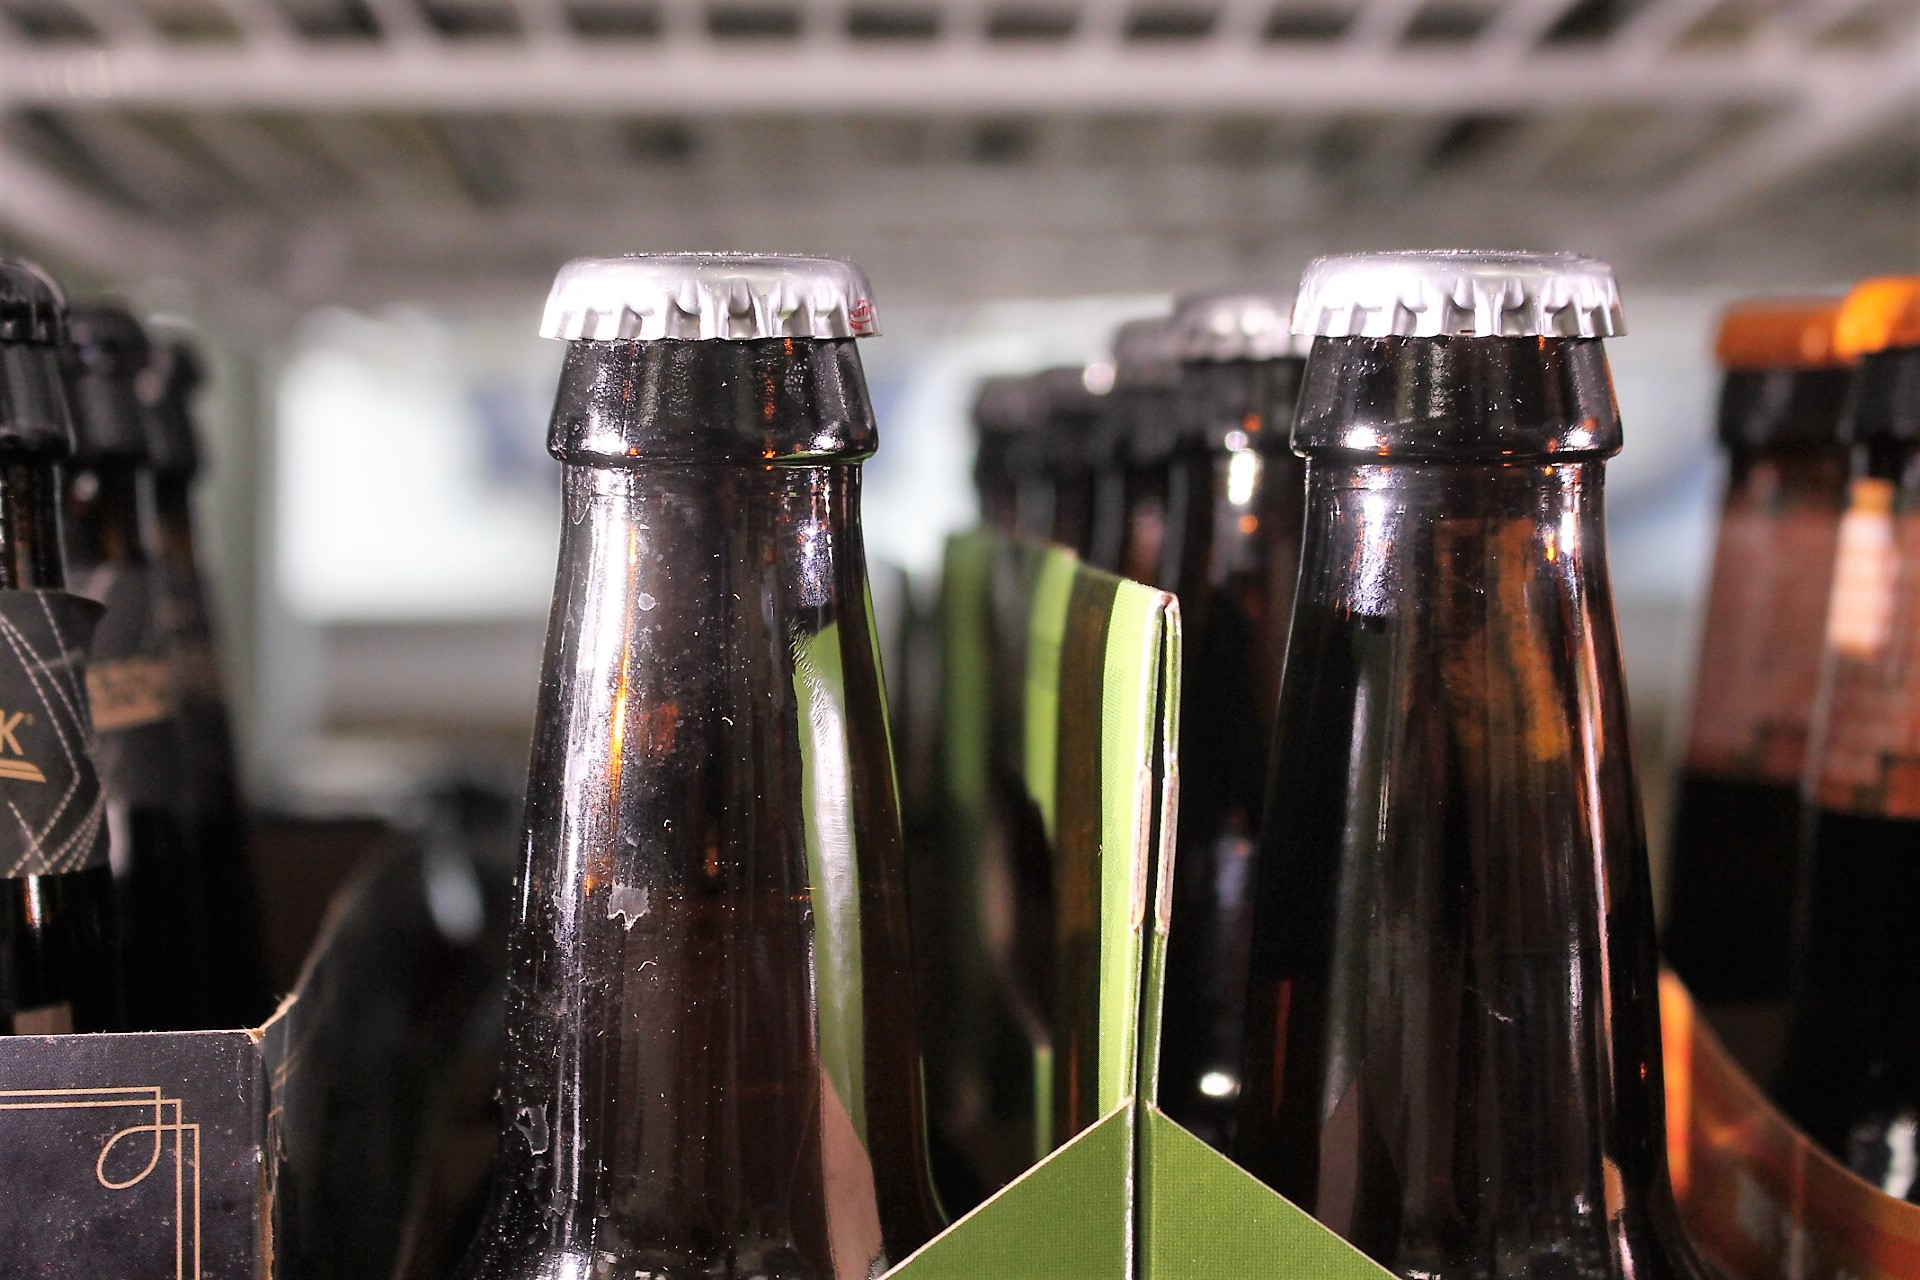 Global Craft Beer Market to Exceed $500 Billion by 2025